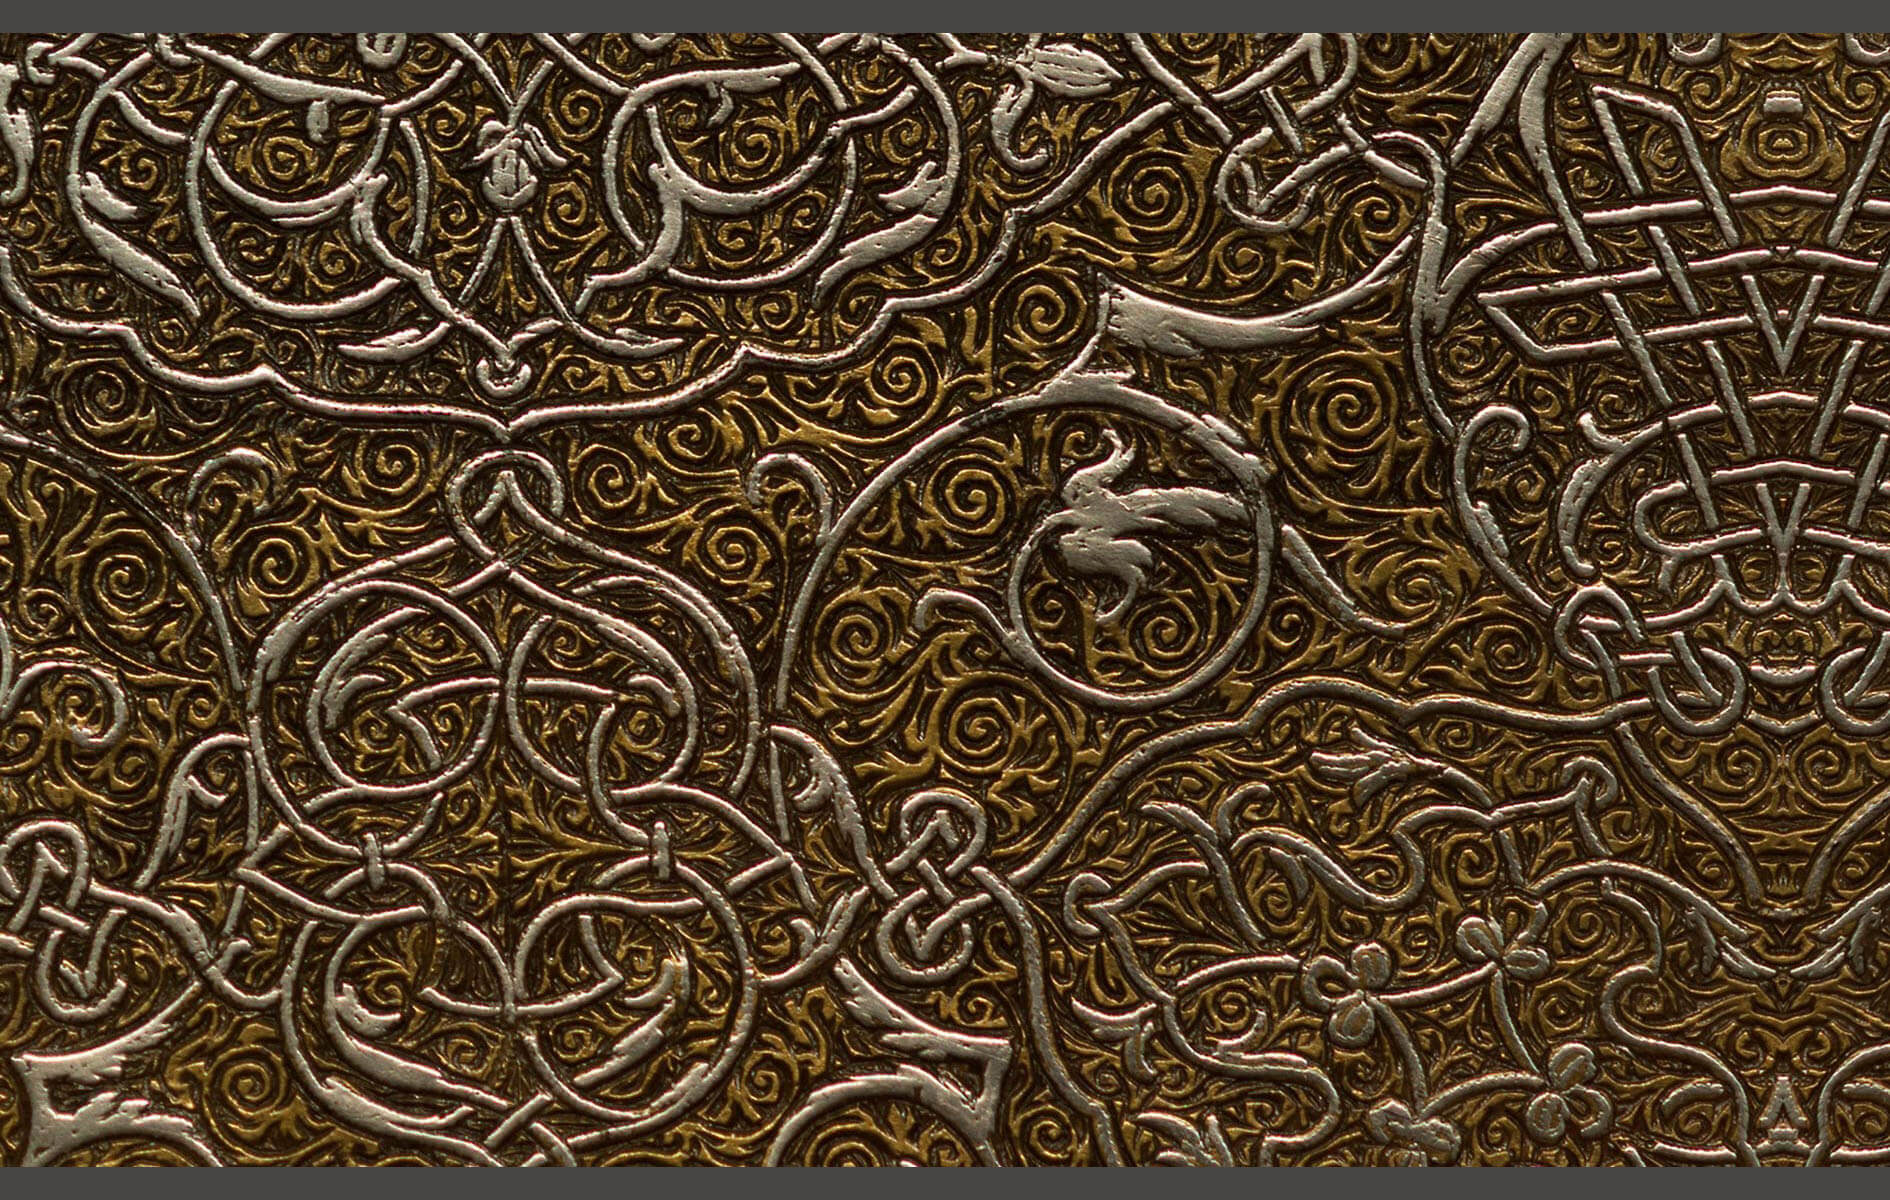 15th Century Metal Work (DE9602) Doug Garrabrants